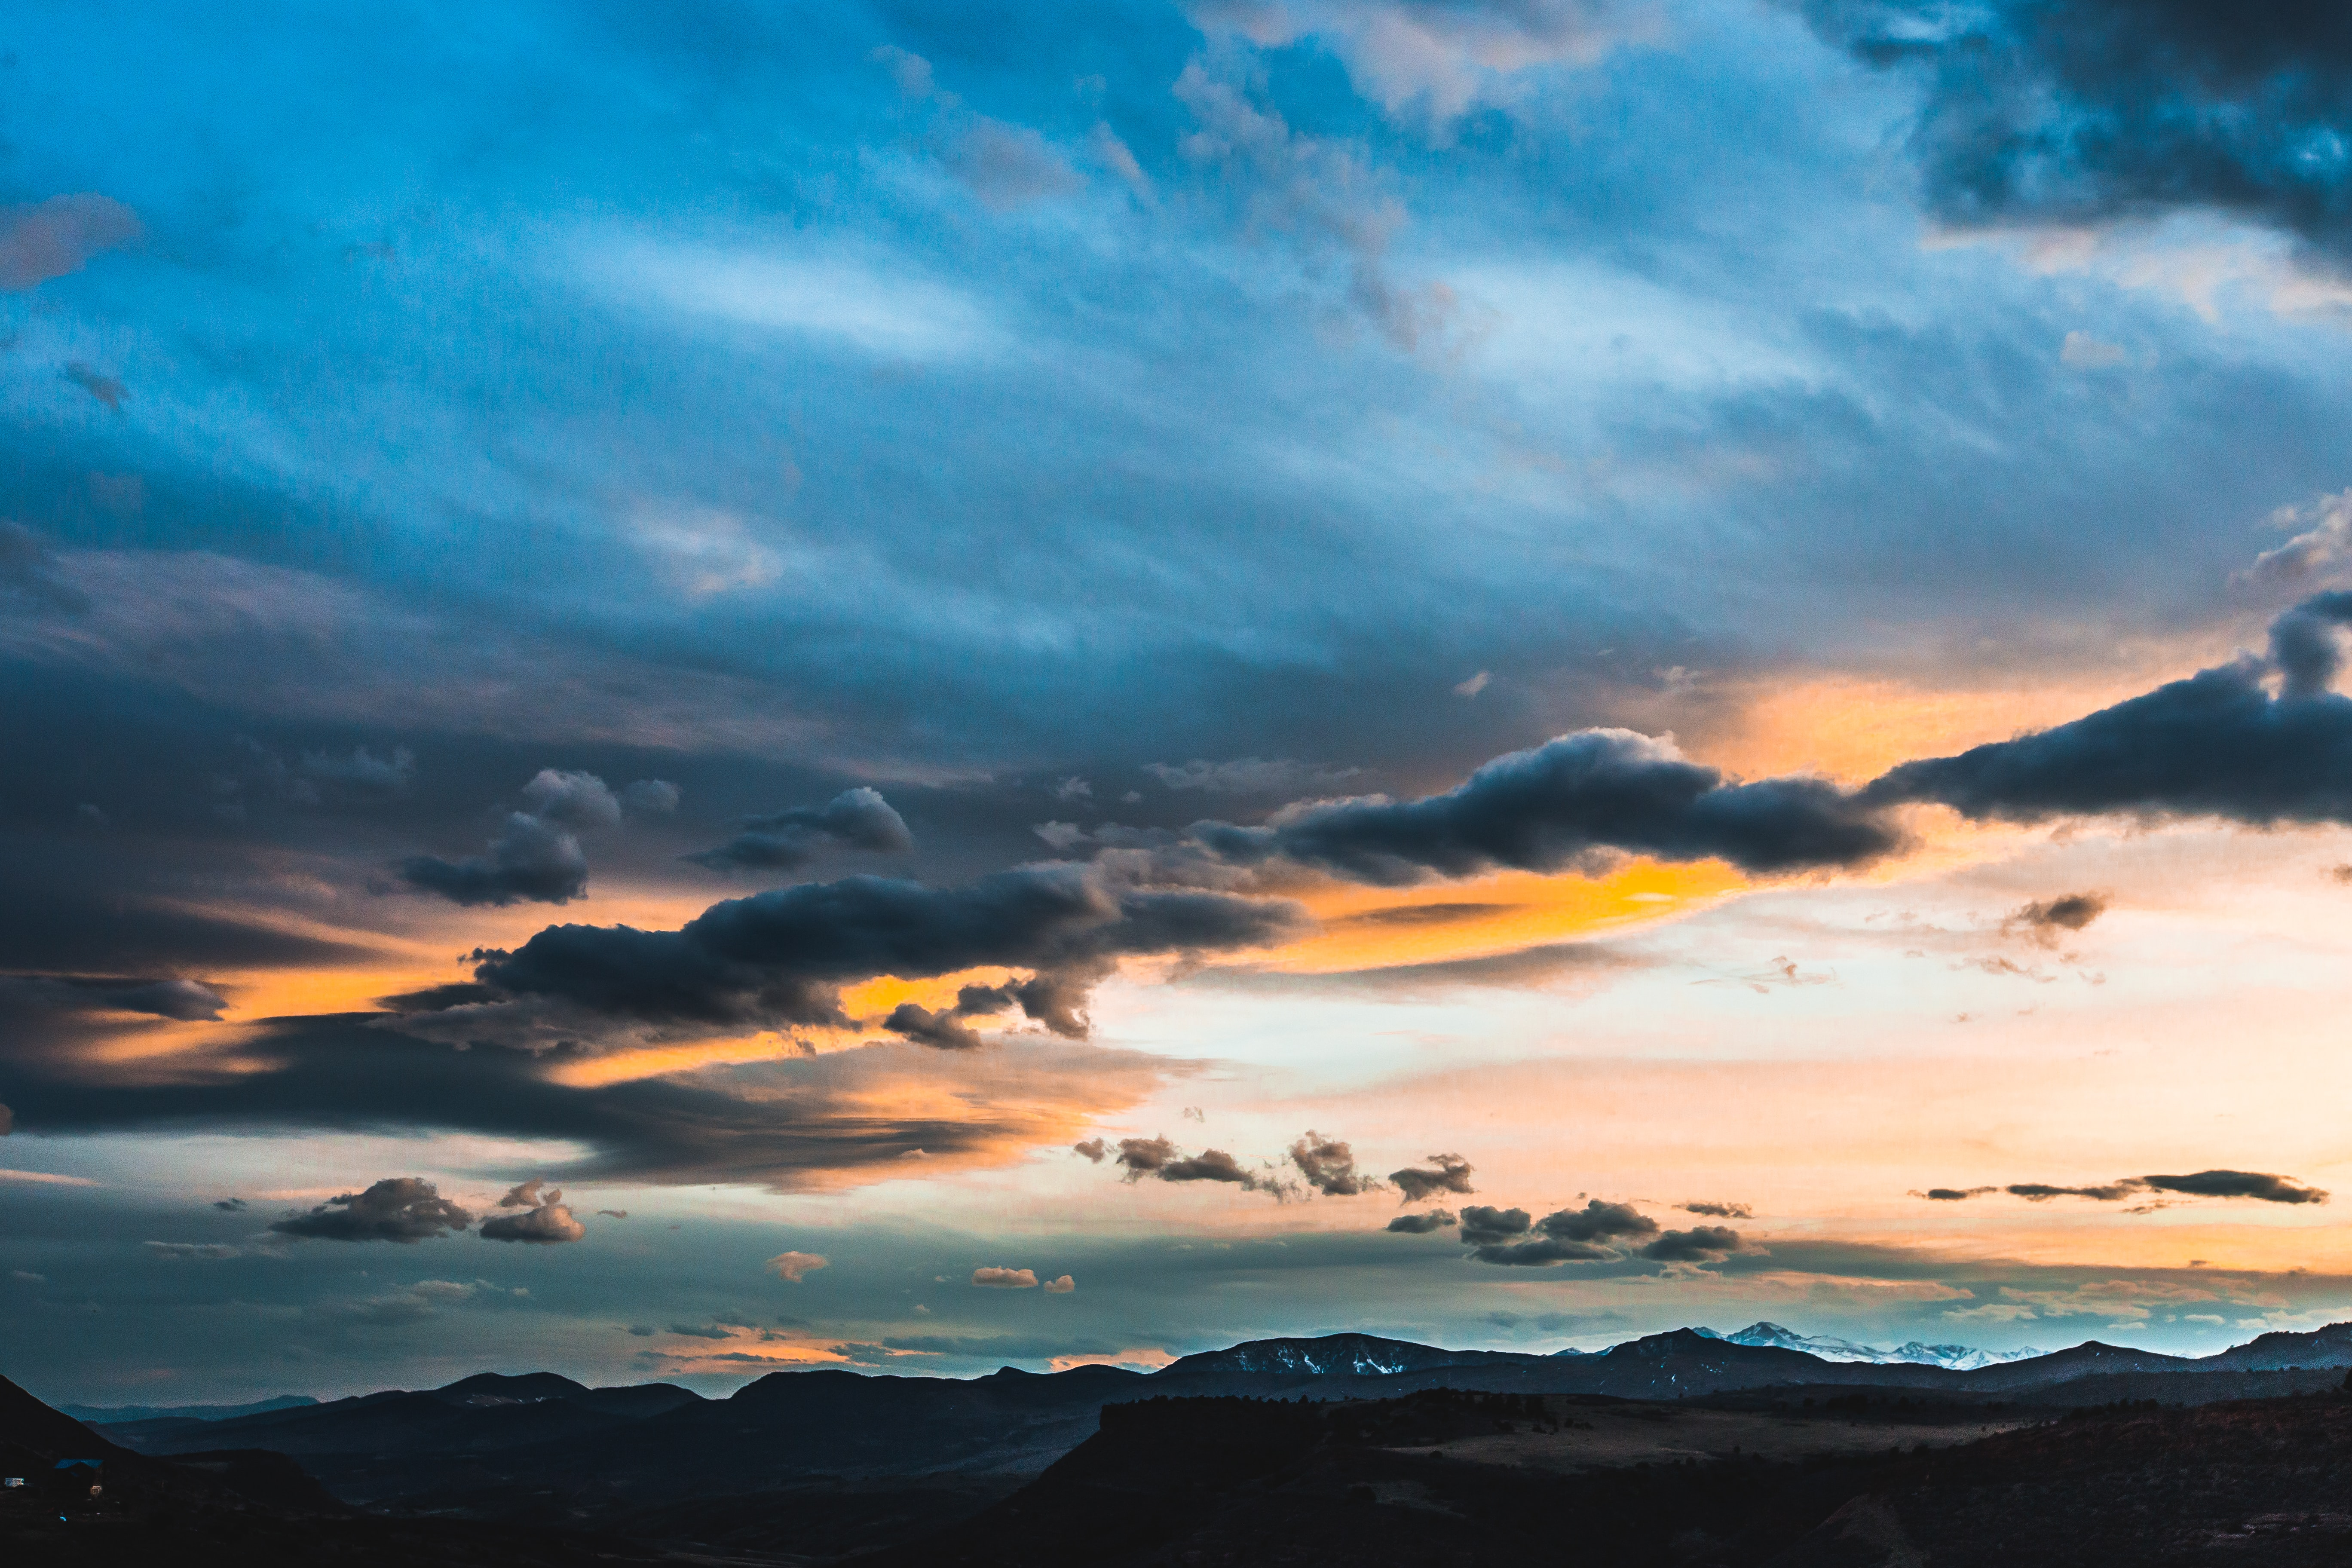 A mountain range at sunset under a cloudy orange sky